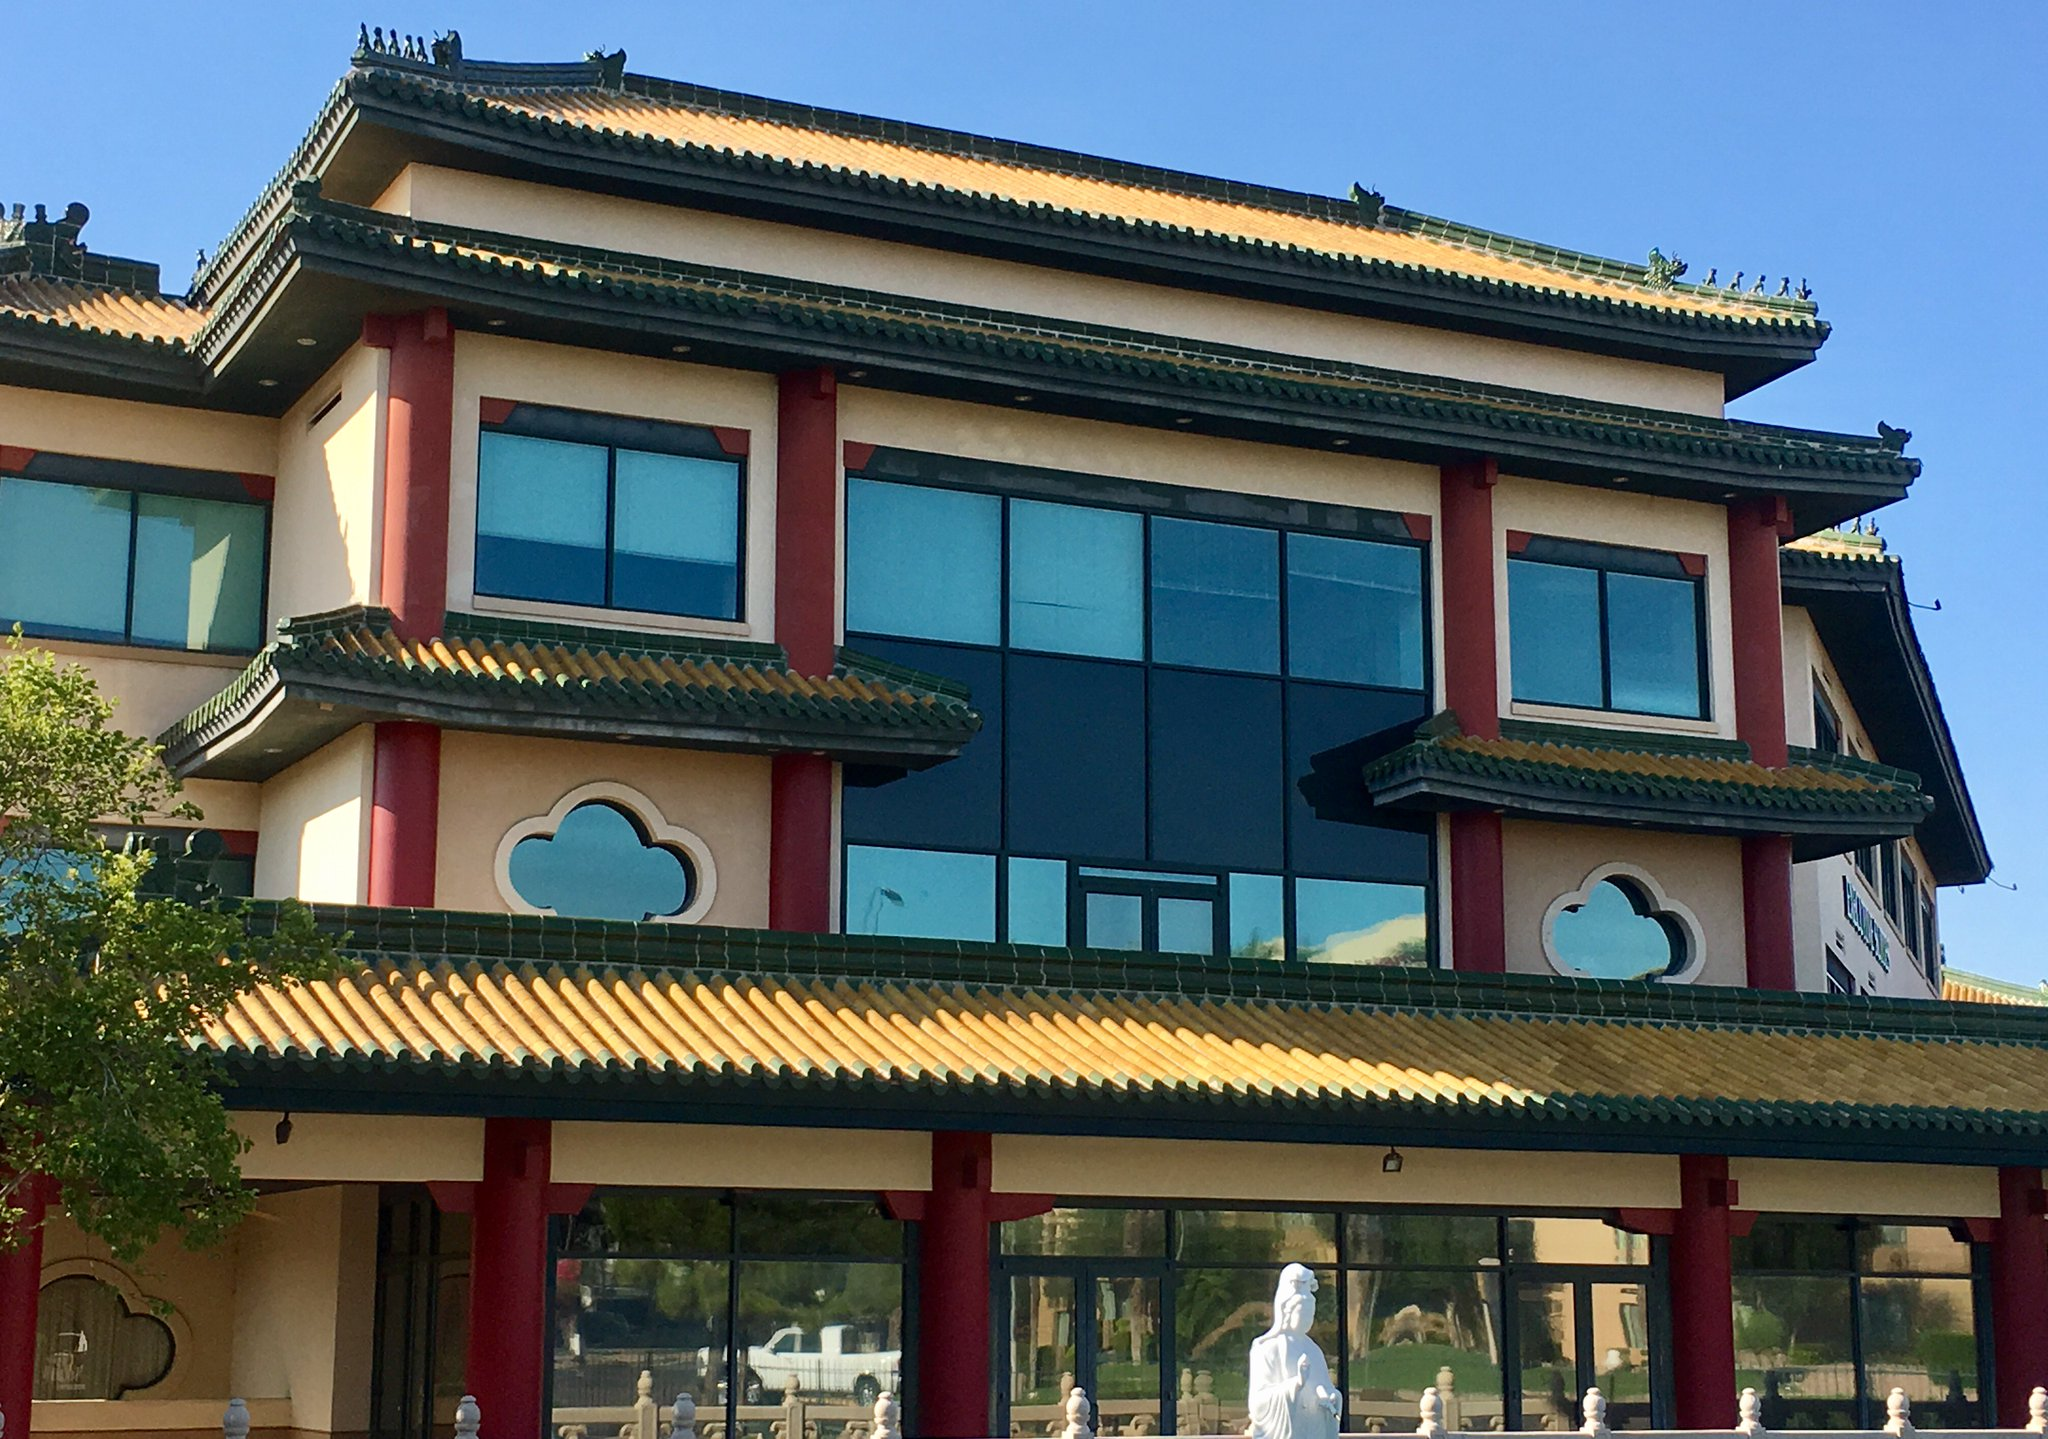 .@Sal_DiCiccio says building may not be #historic but items, material from #china are more than 50 years old. @kjzzphoenix https://t.co/Ww8ipct0sL